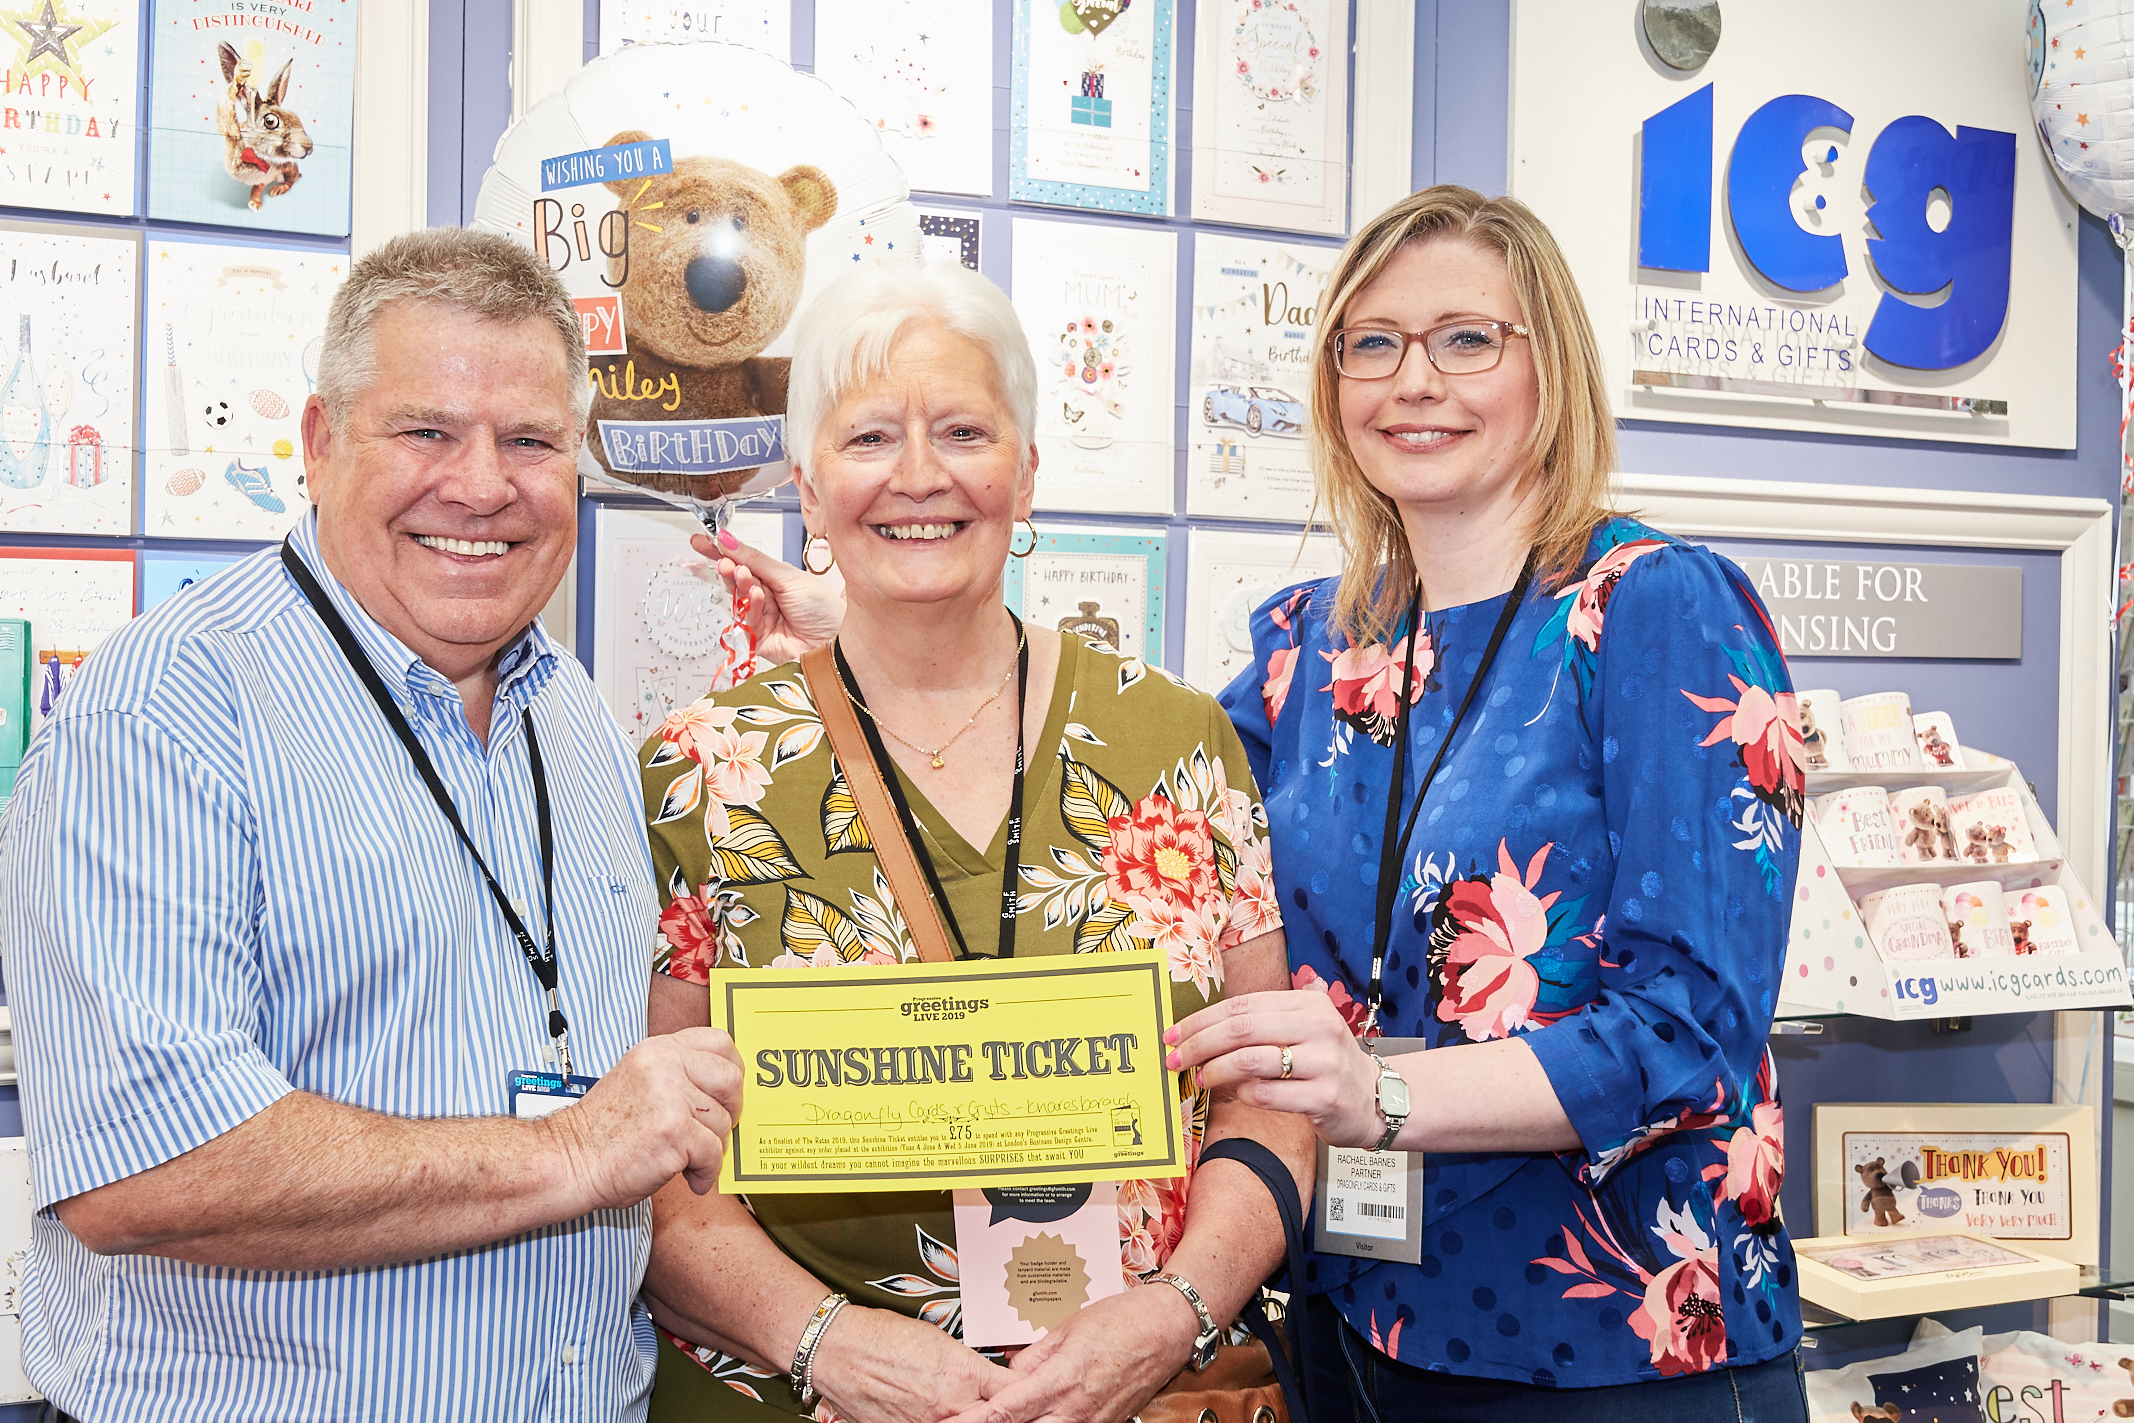 Above: Three rays of sunshine – Tony Roberts with Dragonfly Cards and Gifts' Rachael Barnes (right) and Rita Knibbs at PG Live.